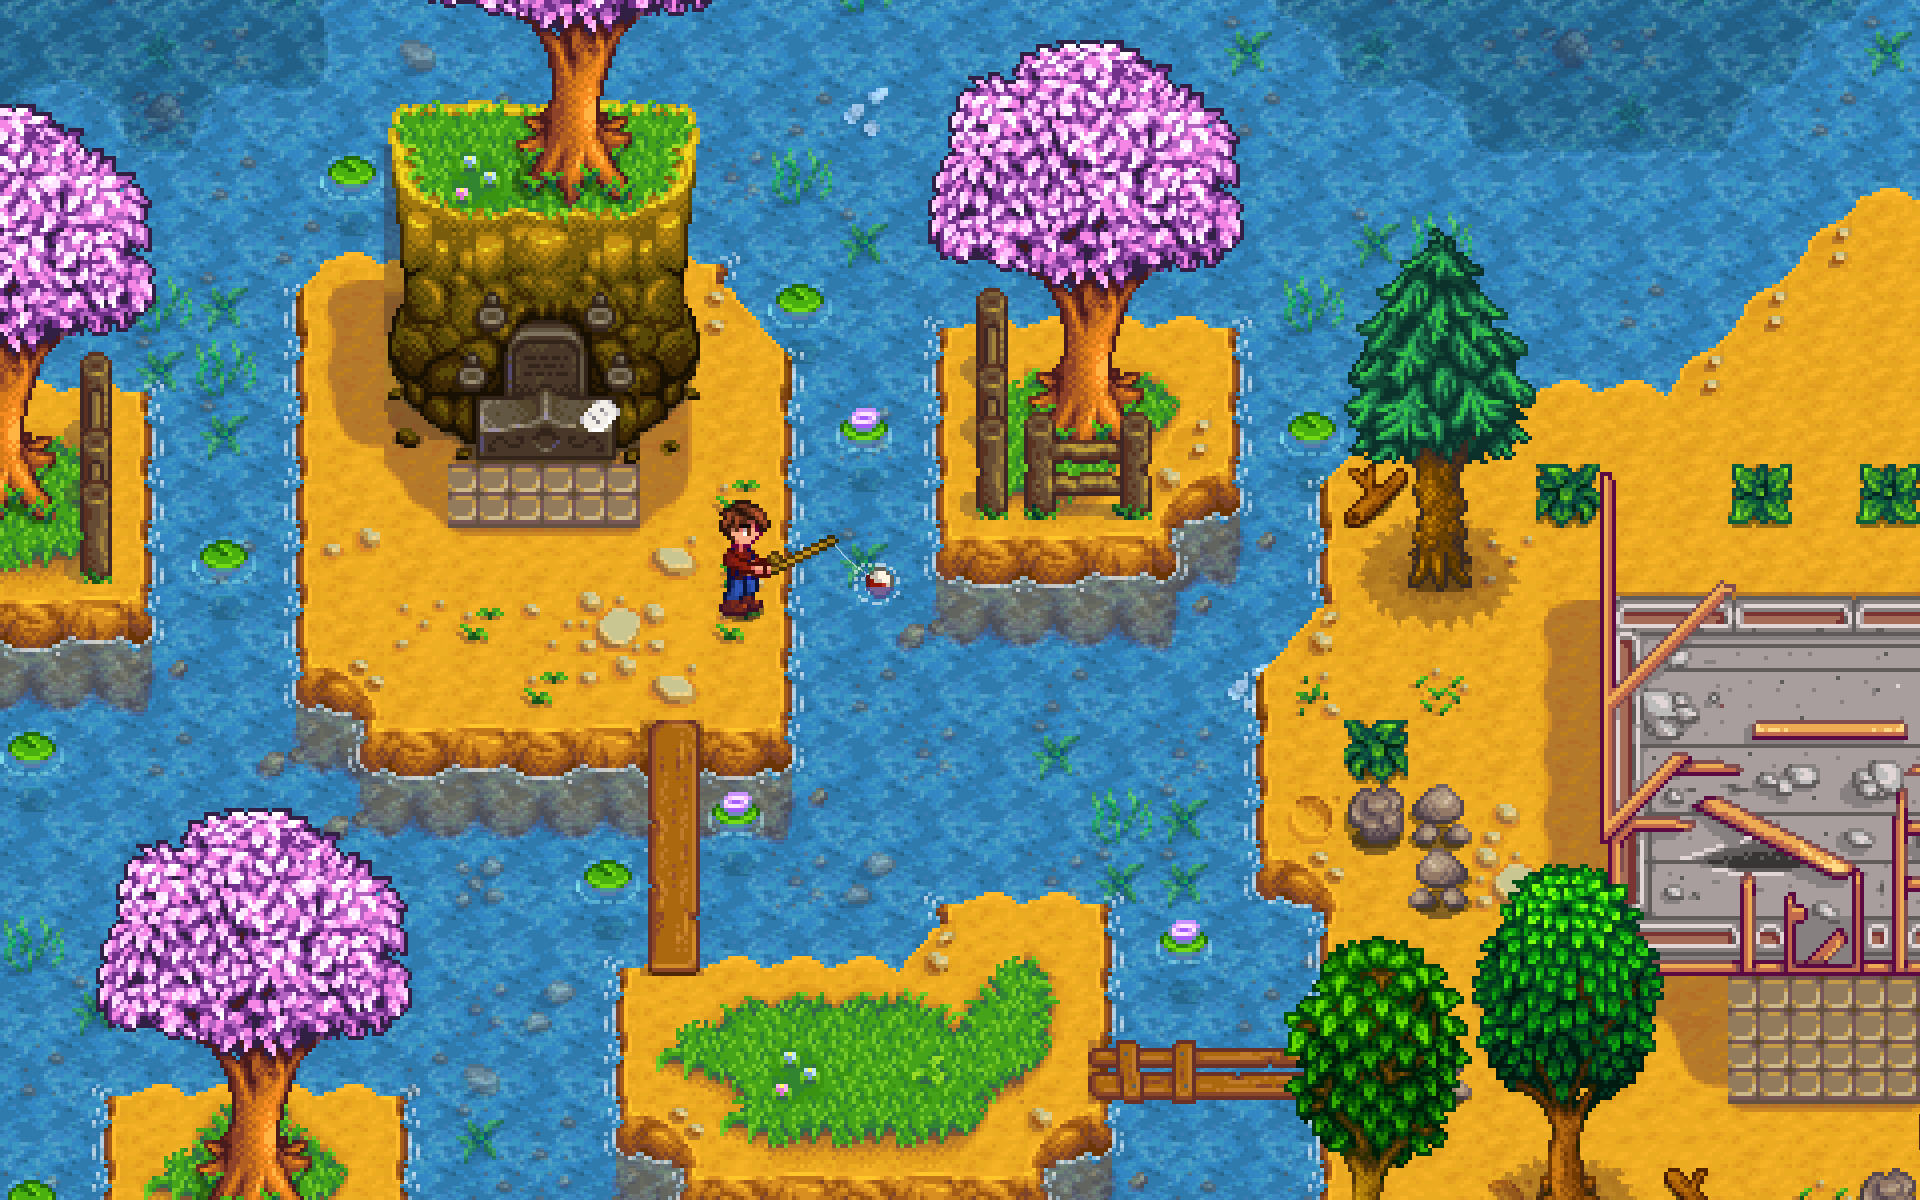 Stardew Valley Creator Talks Plans For His Next Game and His Approach to Design